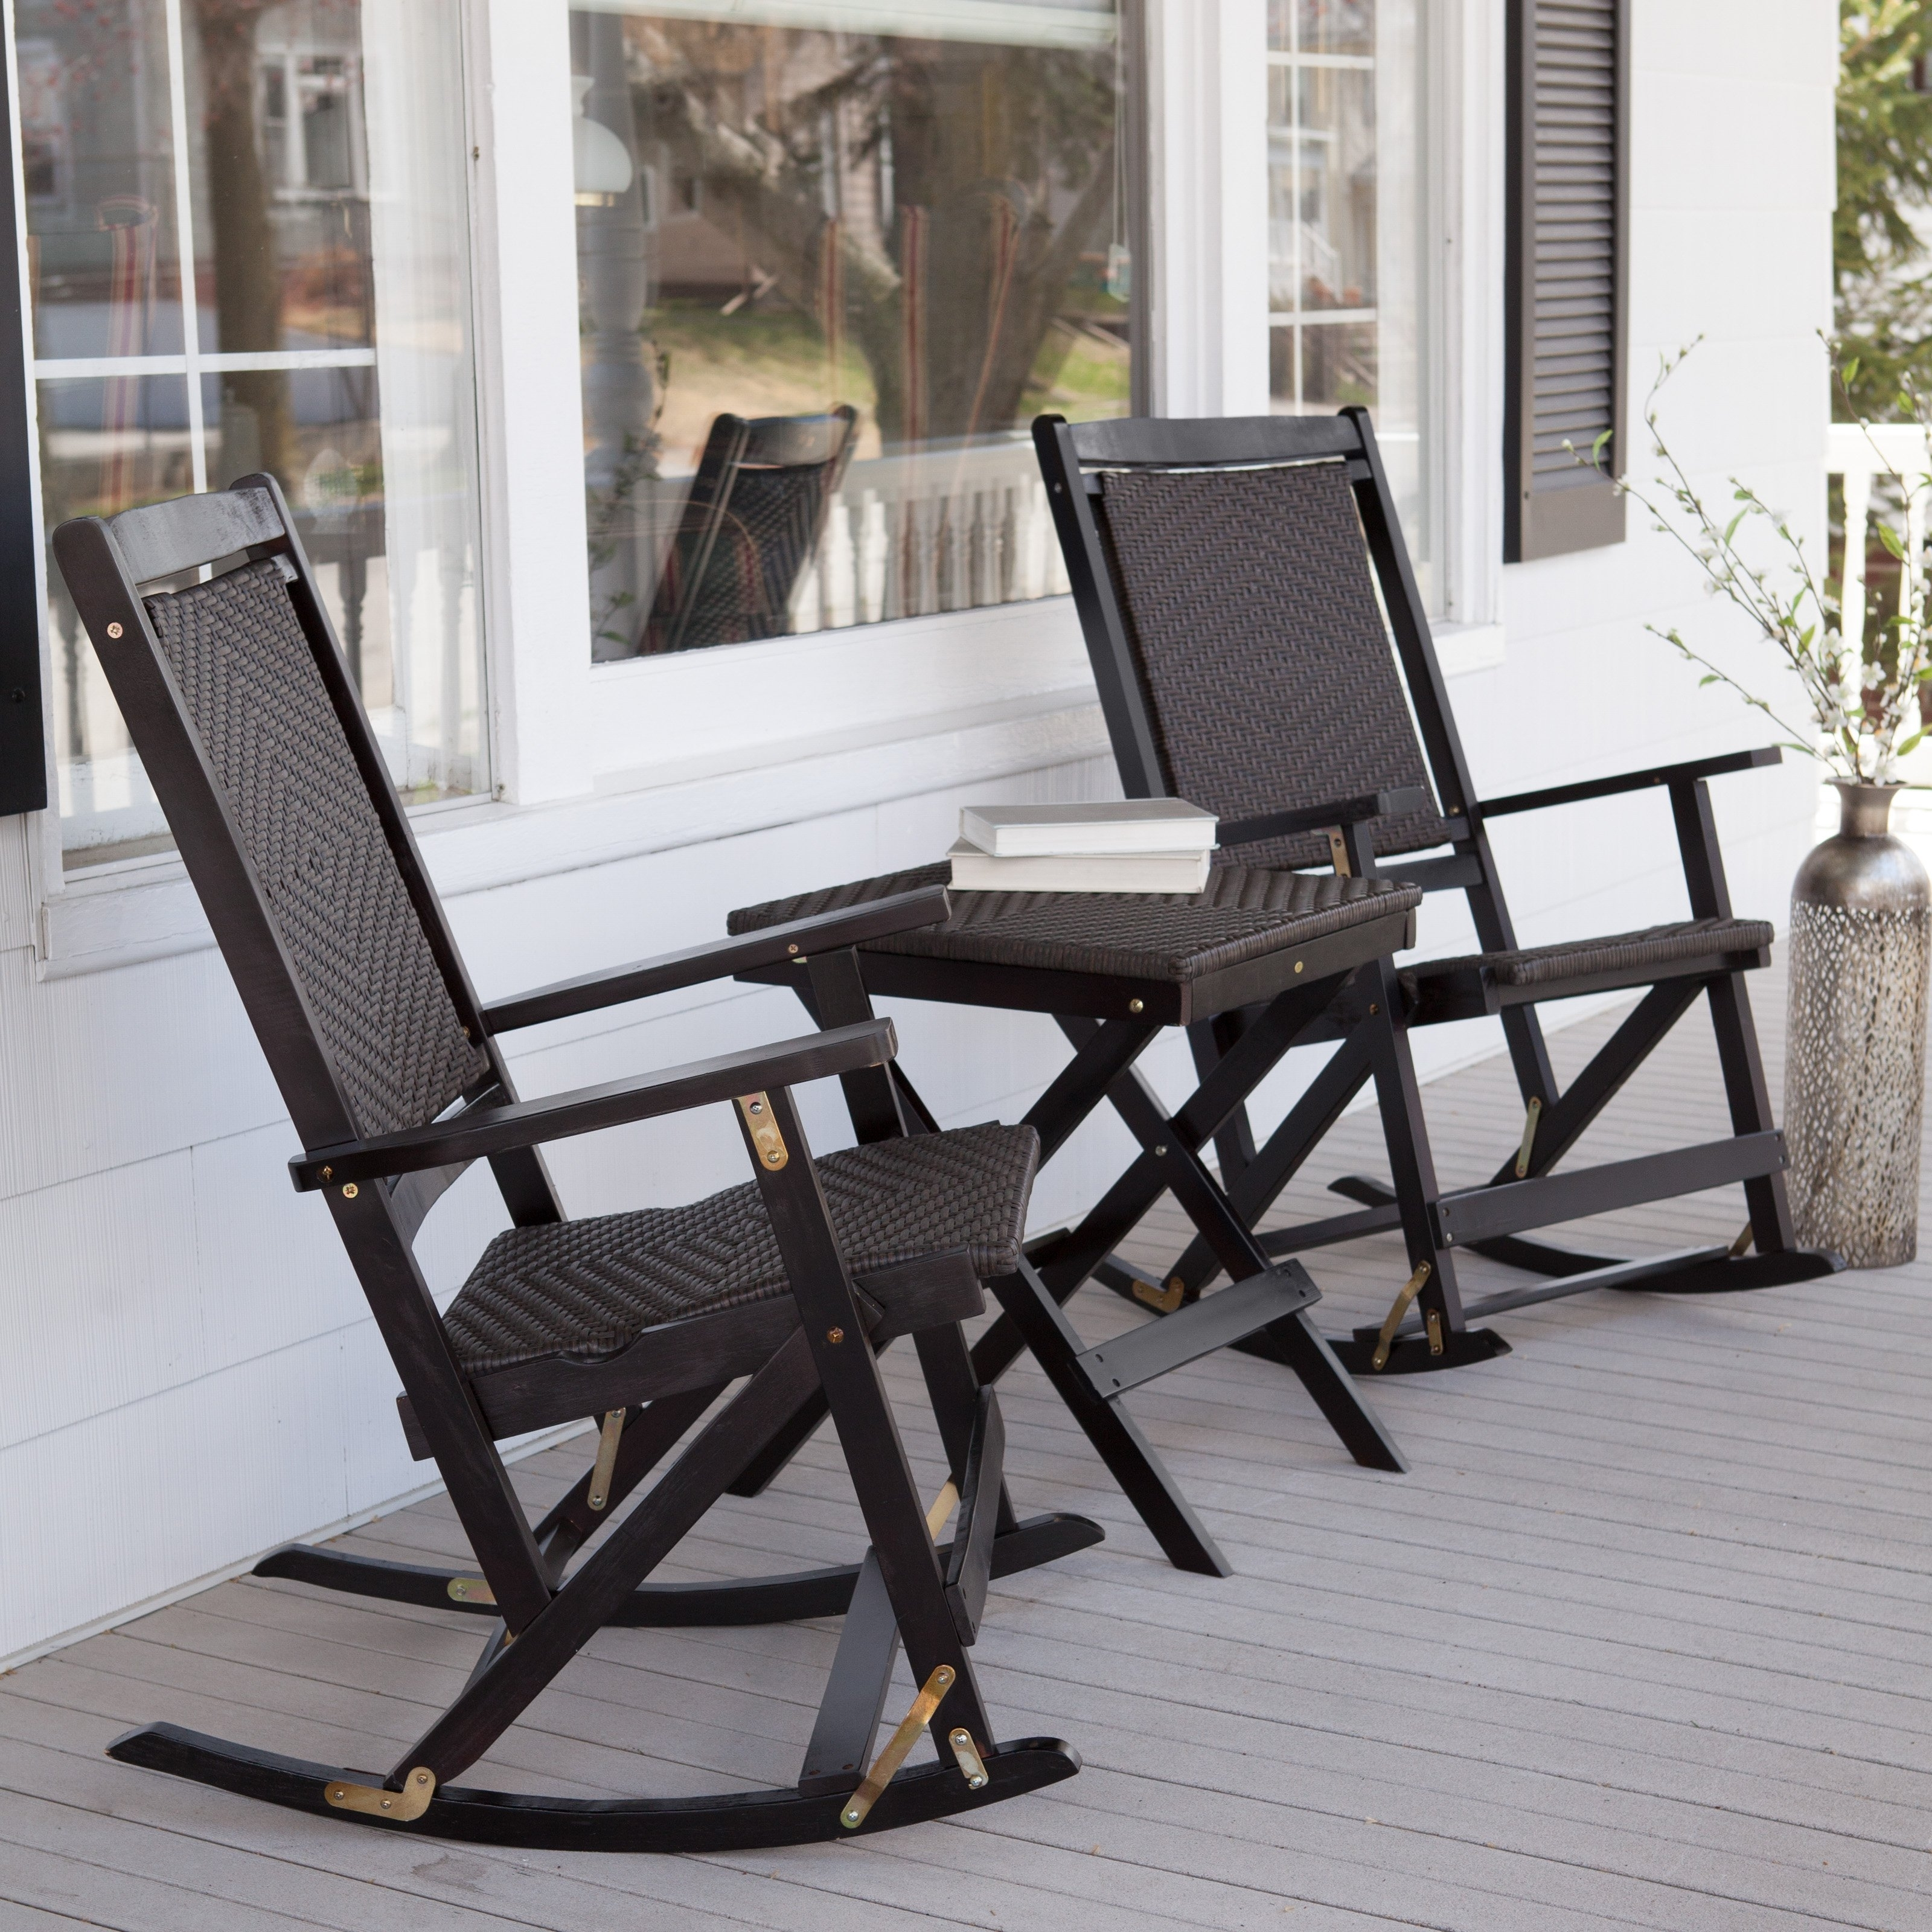 Well Known Outdoor Wicker Rocking Chair Set – Outdoor Designs Throughout Outdoor Rocking Chairs With Table (View 18 of 20)